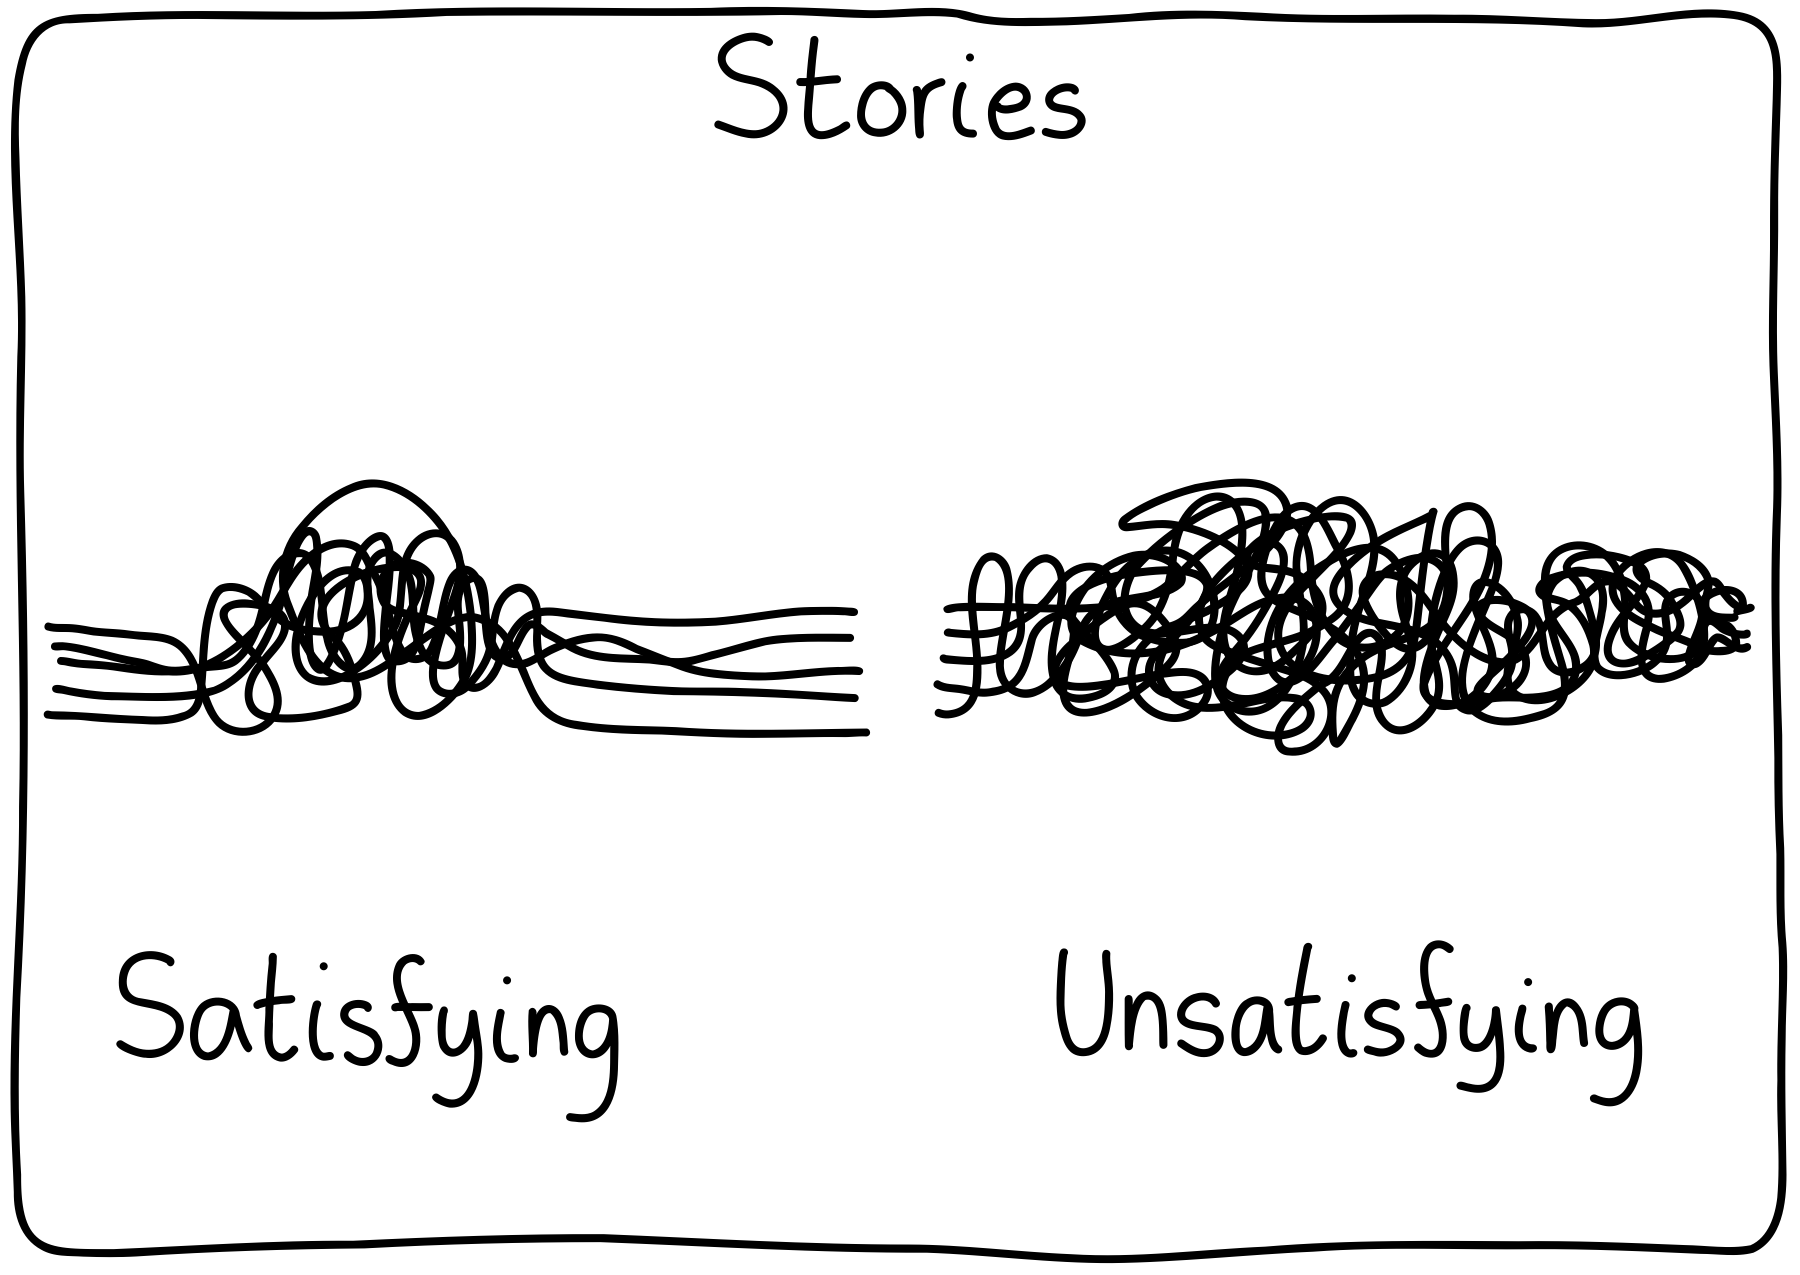 A comparison of stories. On the left, a satisfying story that has its threads start off untangled, get knotted in the middle, and then are untangled at the end. On the right, an unsatisfying story that has its threads all tangled and knotted, without any resolution.